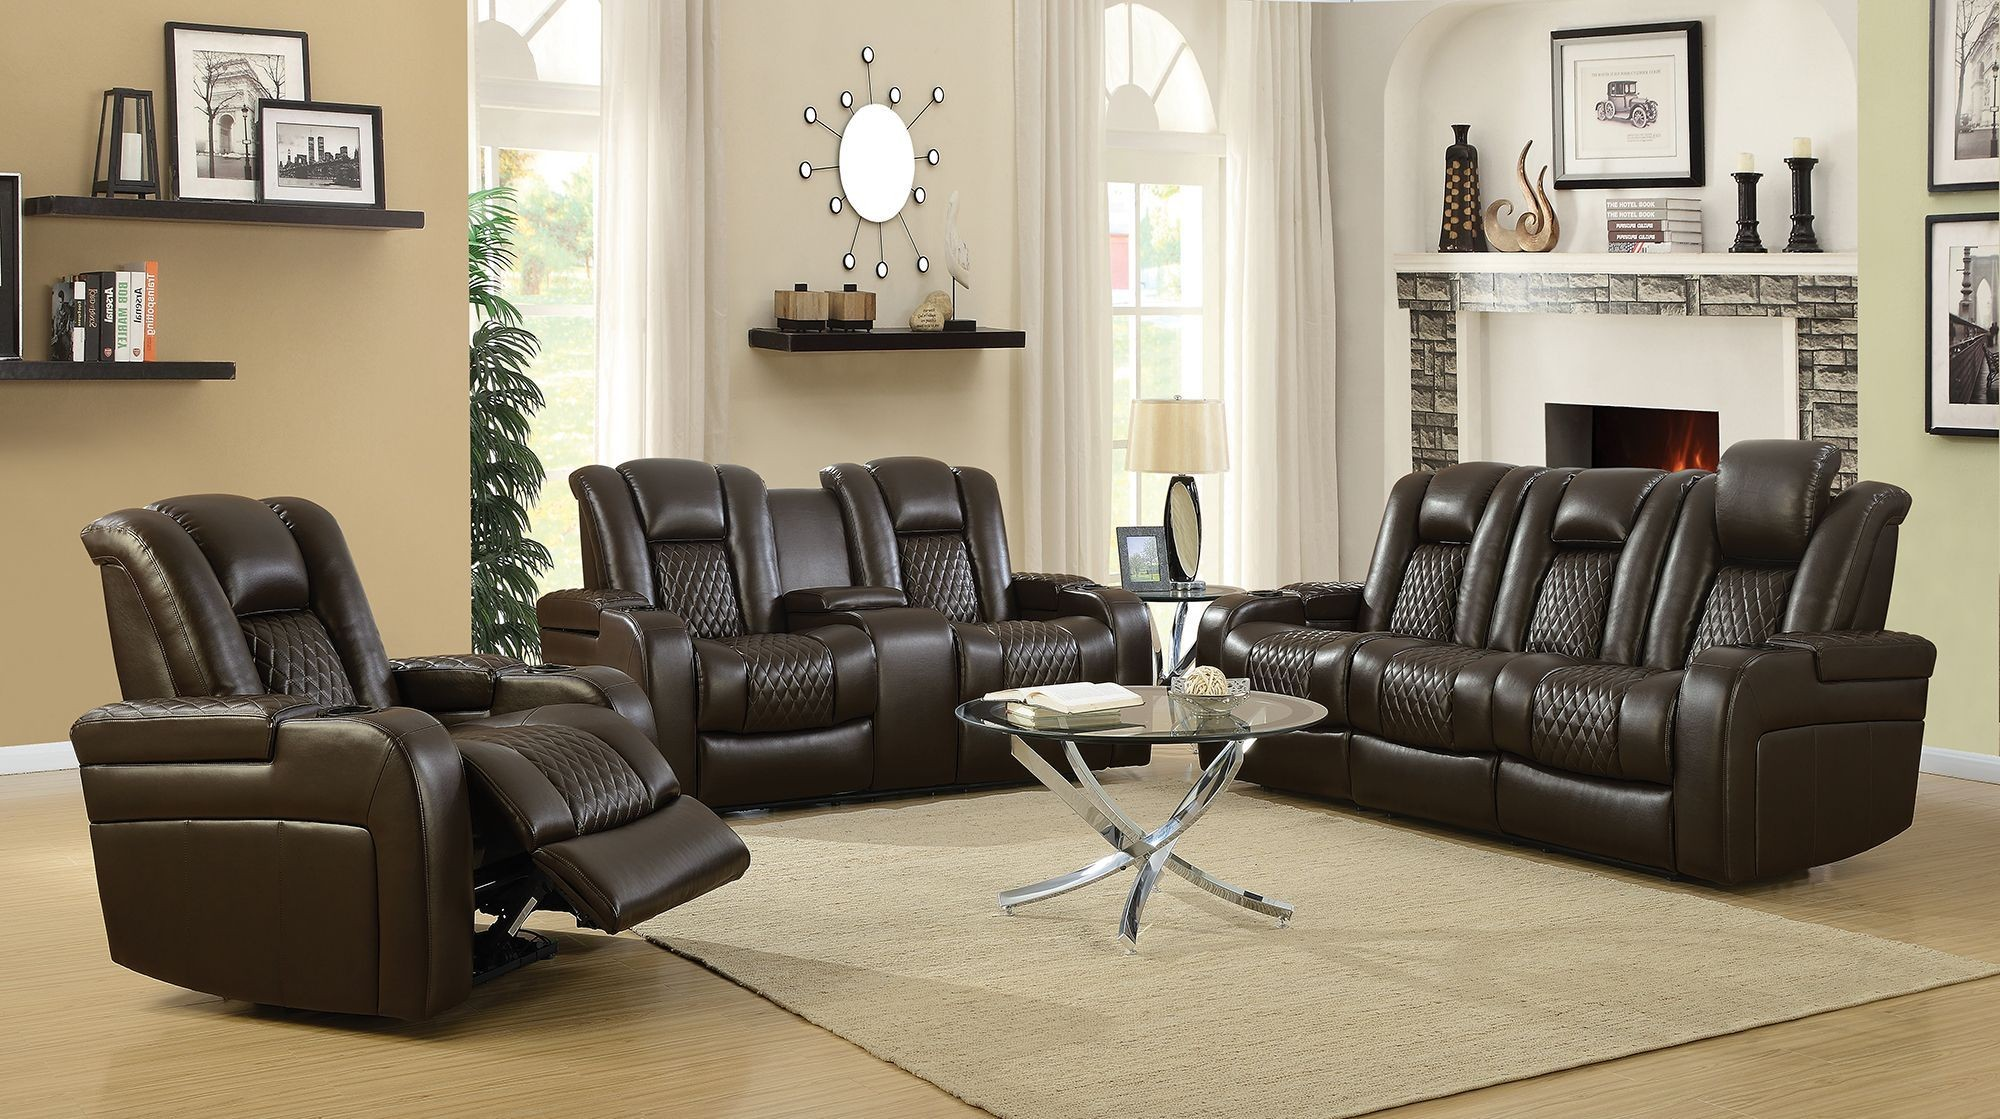 Delangelo motion brown power motion living room set from coaster coleman furniture for Motion living room furniture